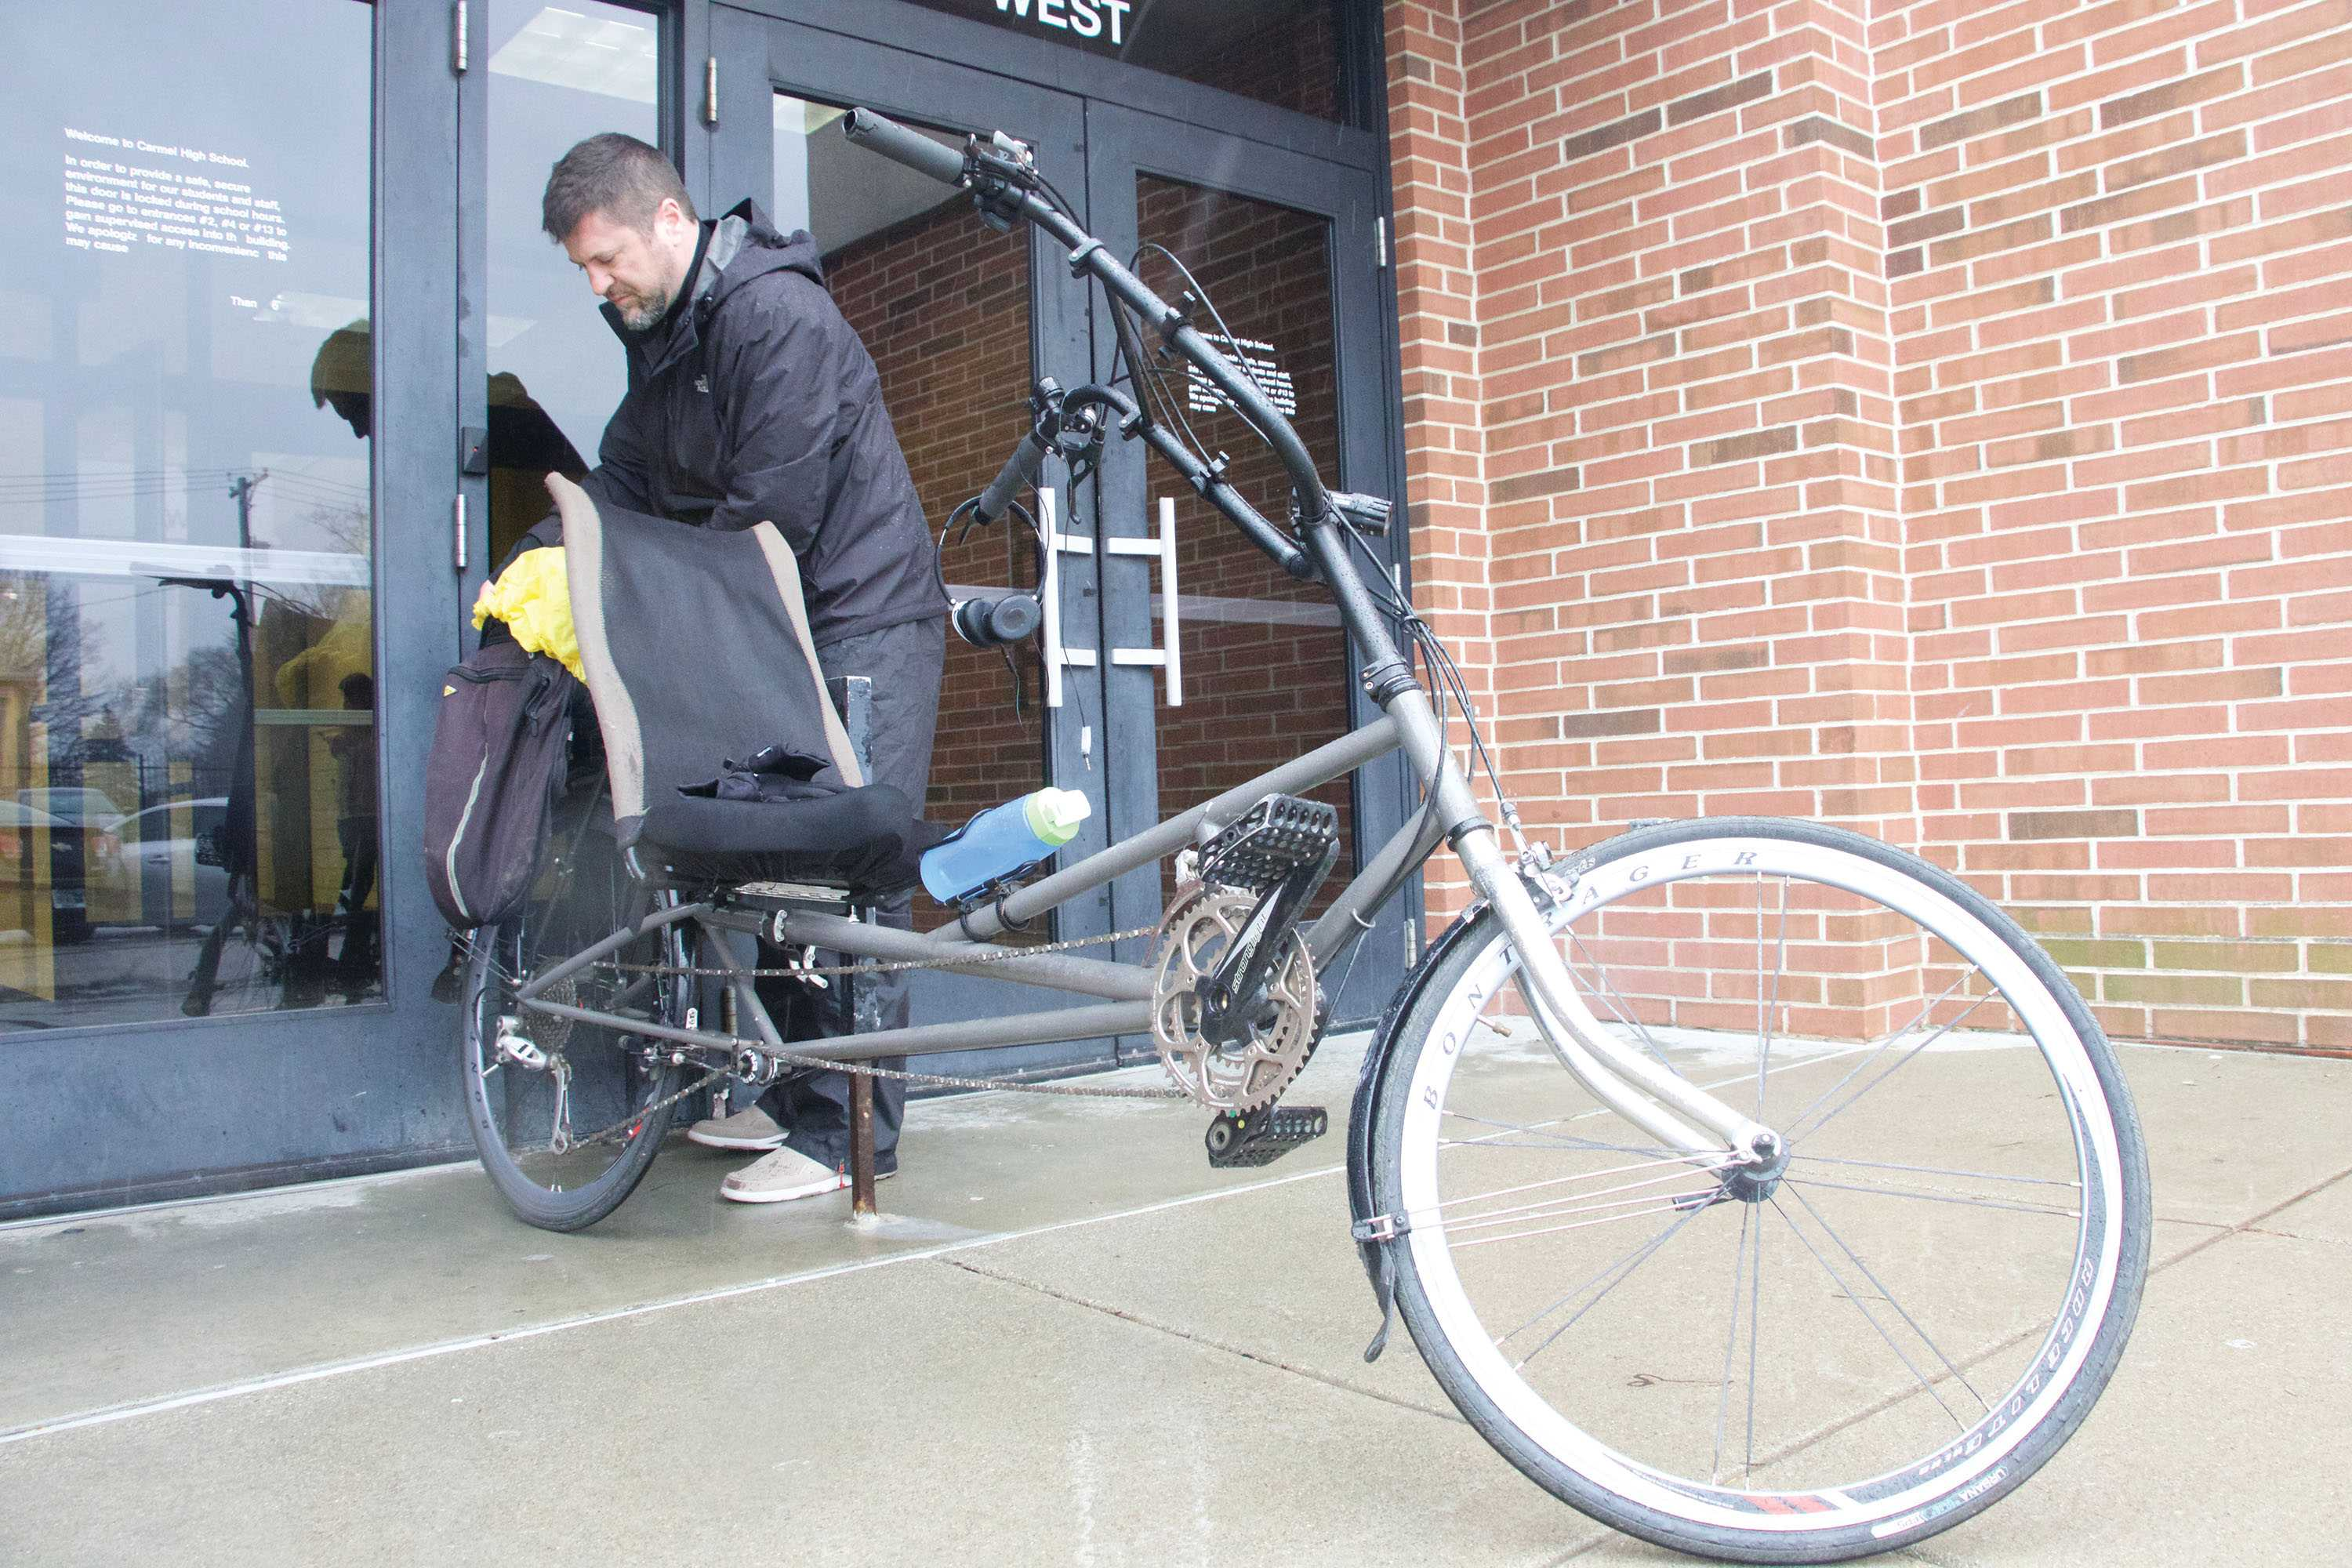 Photography teacher Kevin Daly prepares his bike before commuting home after school. Daly said he supports the addition of new bike paths and trails in Carmel, especially because he bikes 22 miles to and from CHS on a daily basis.